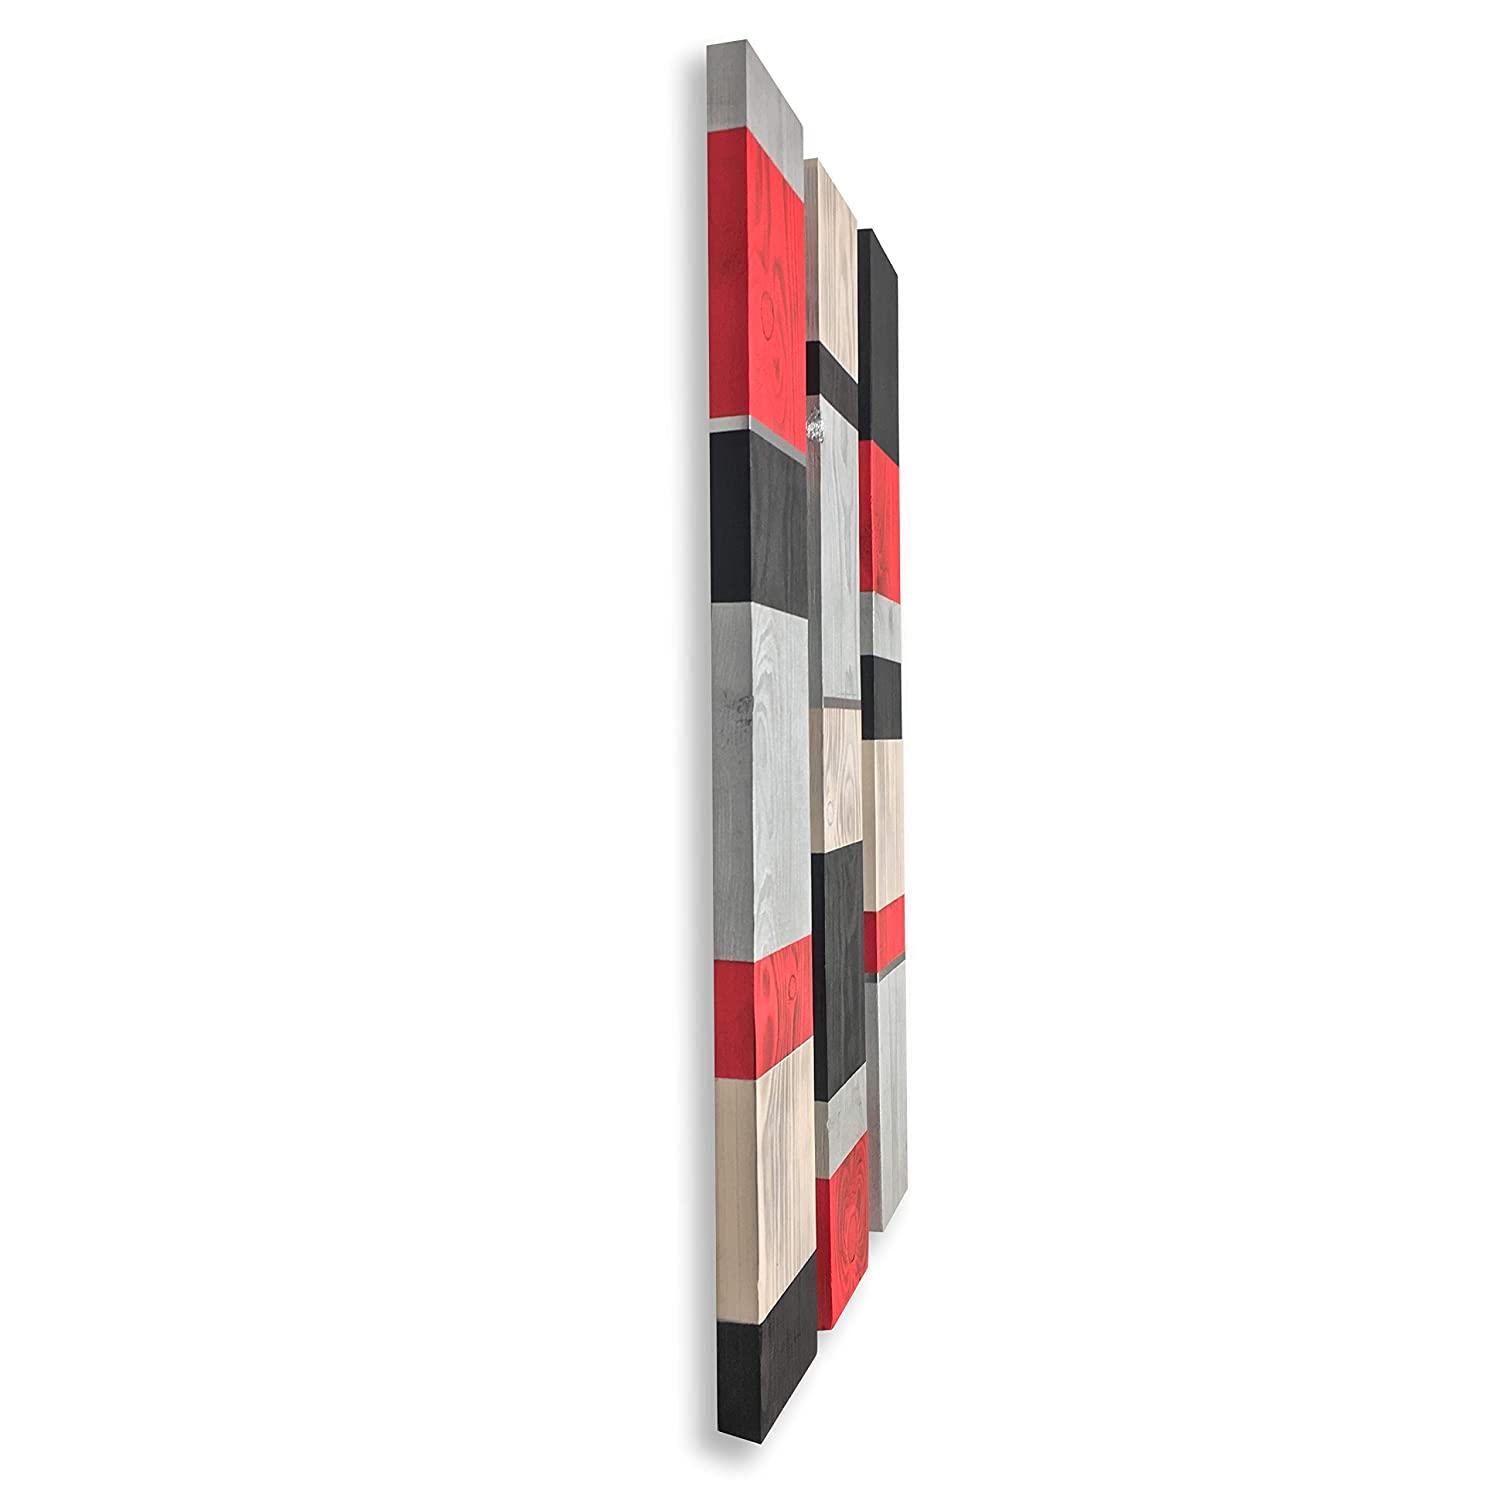 White /& Silver Black 3 Panel Wood Wall Sculpture Red Modern Rustic Wood Wall Hanging